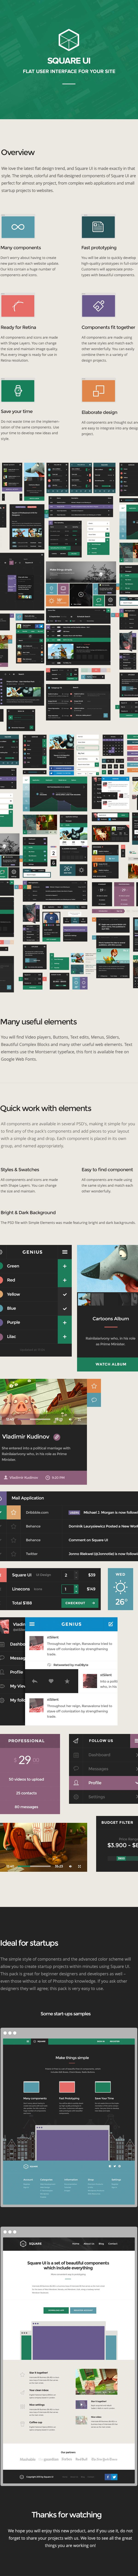 Awesome Flat User Interface Pack on Behance